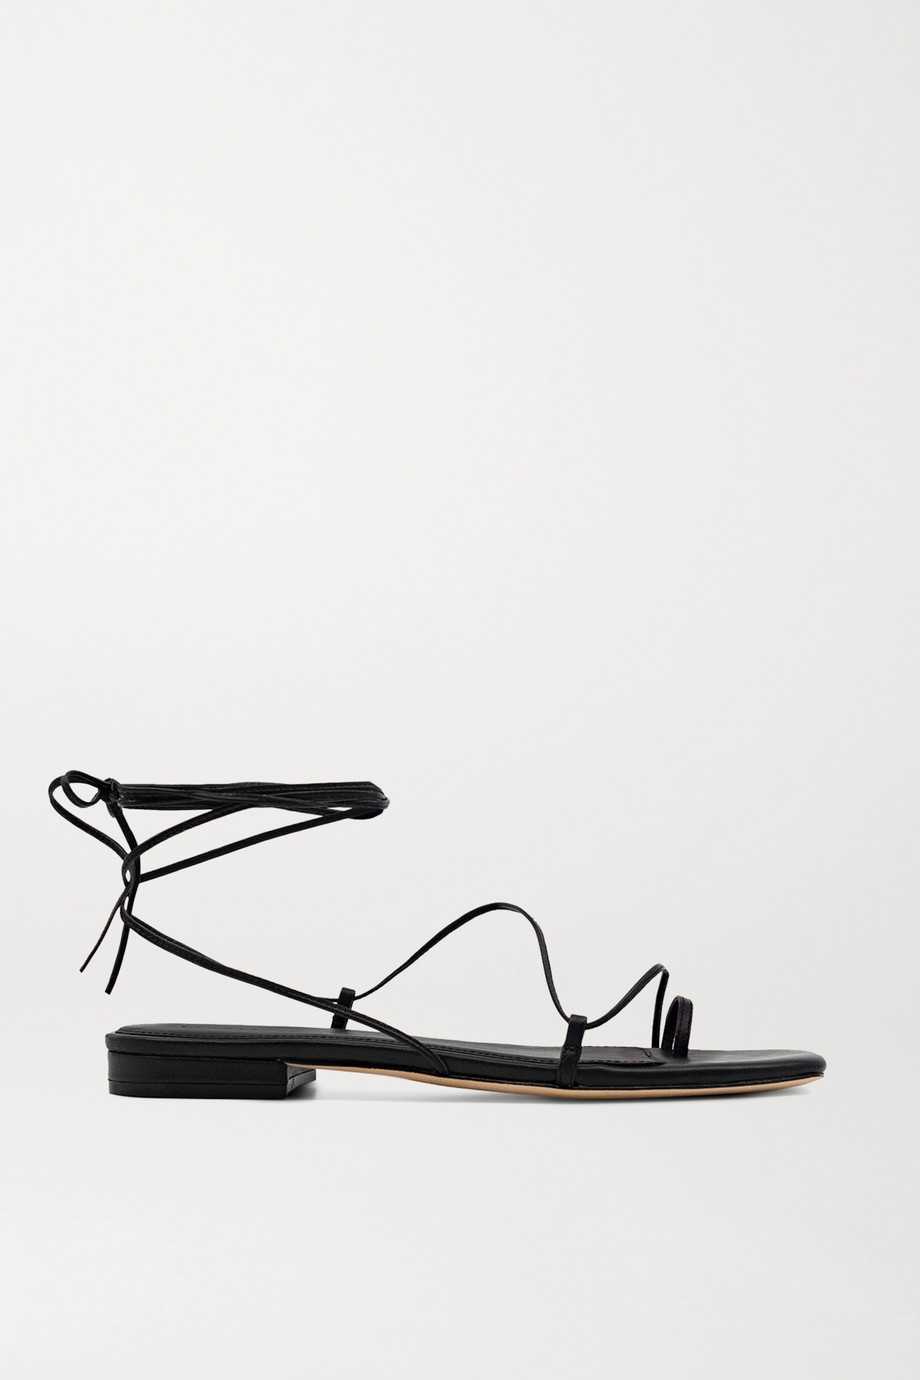 STUDIO AMELIA 1.1 leather sandals